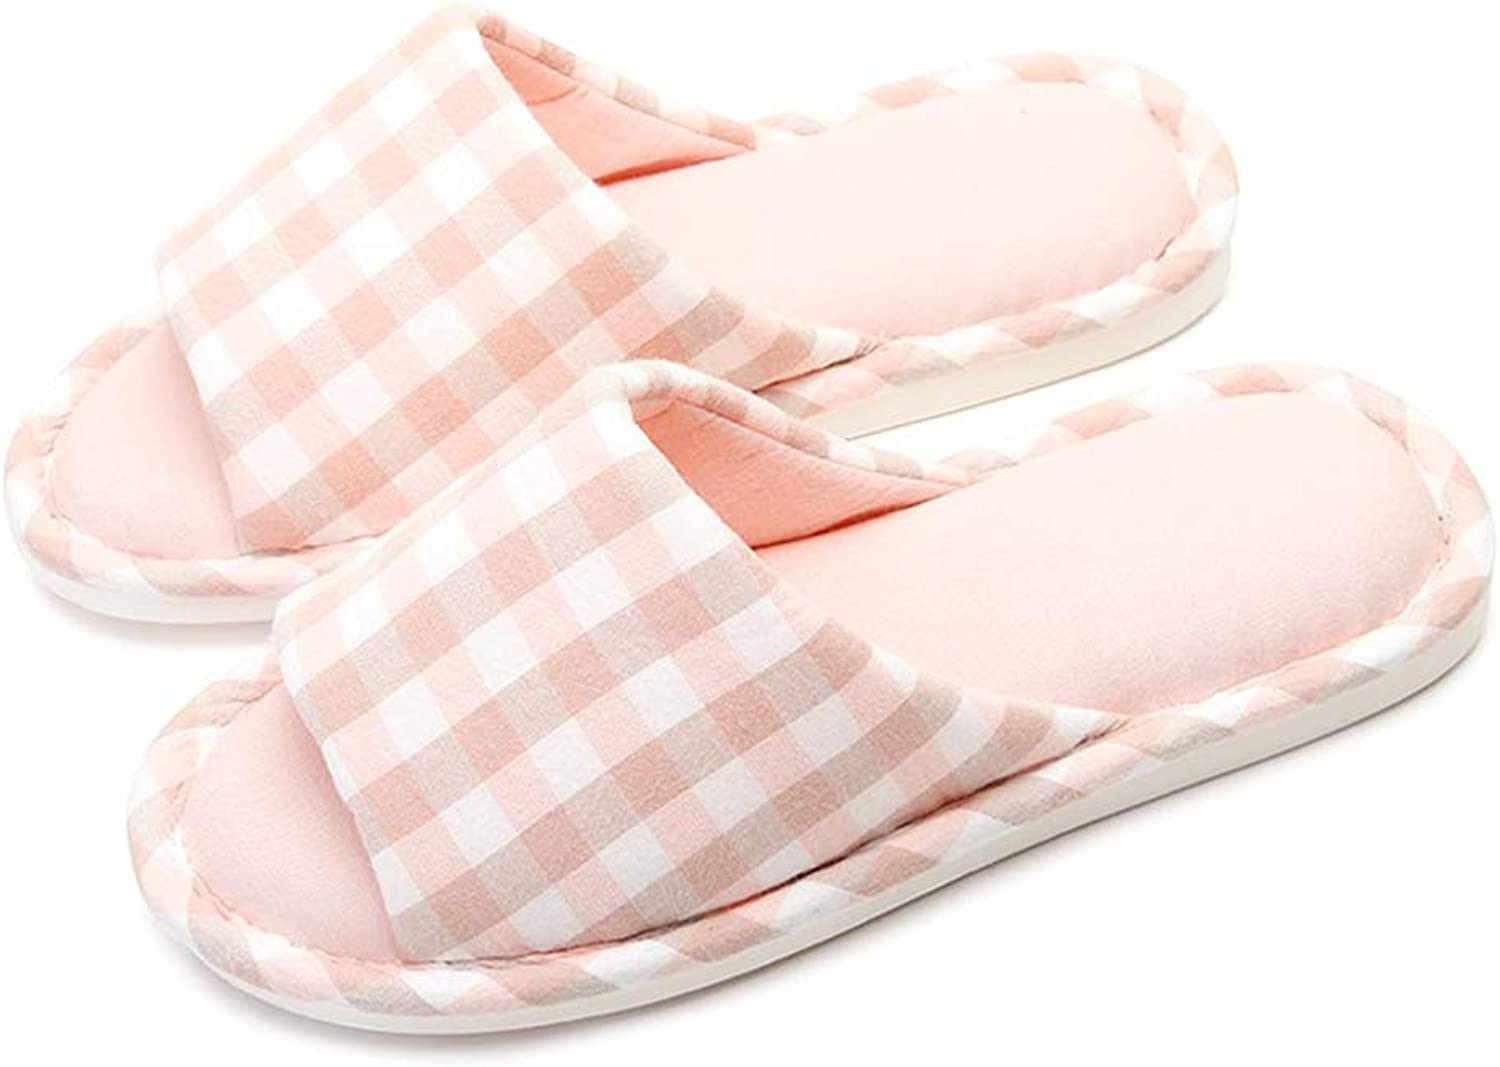 Warm Women Slippers Cotton-Padded Anti-Slip at House Family Home Slippers Stripe Autumn Winter Indoor shoes,Pink,3738